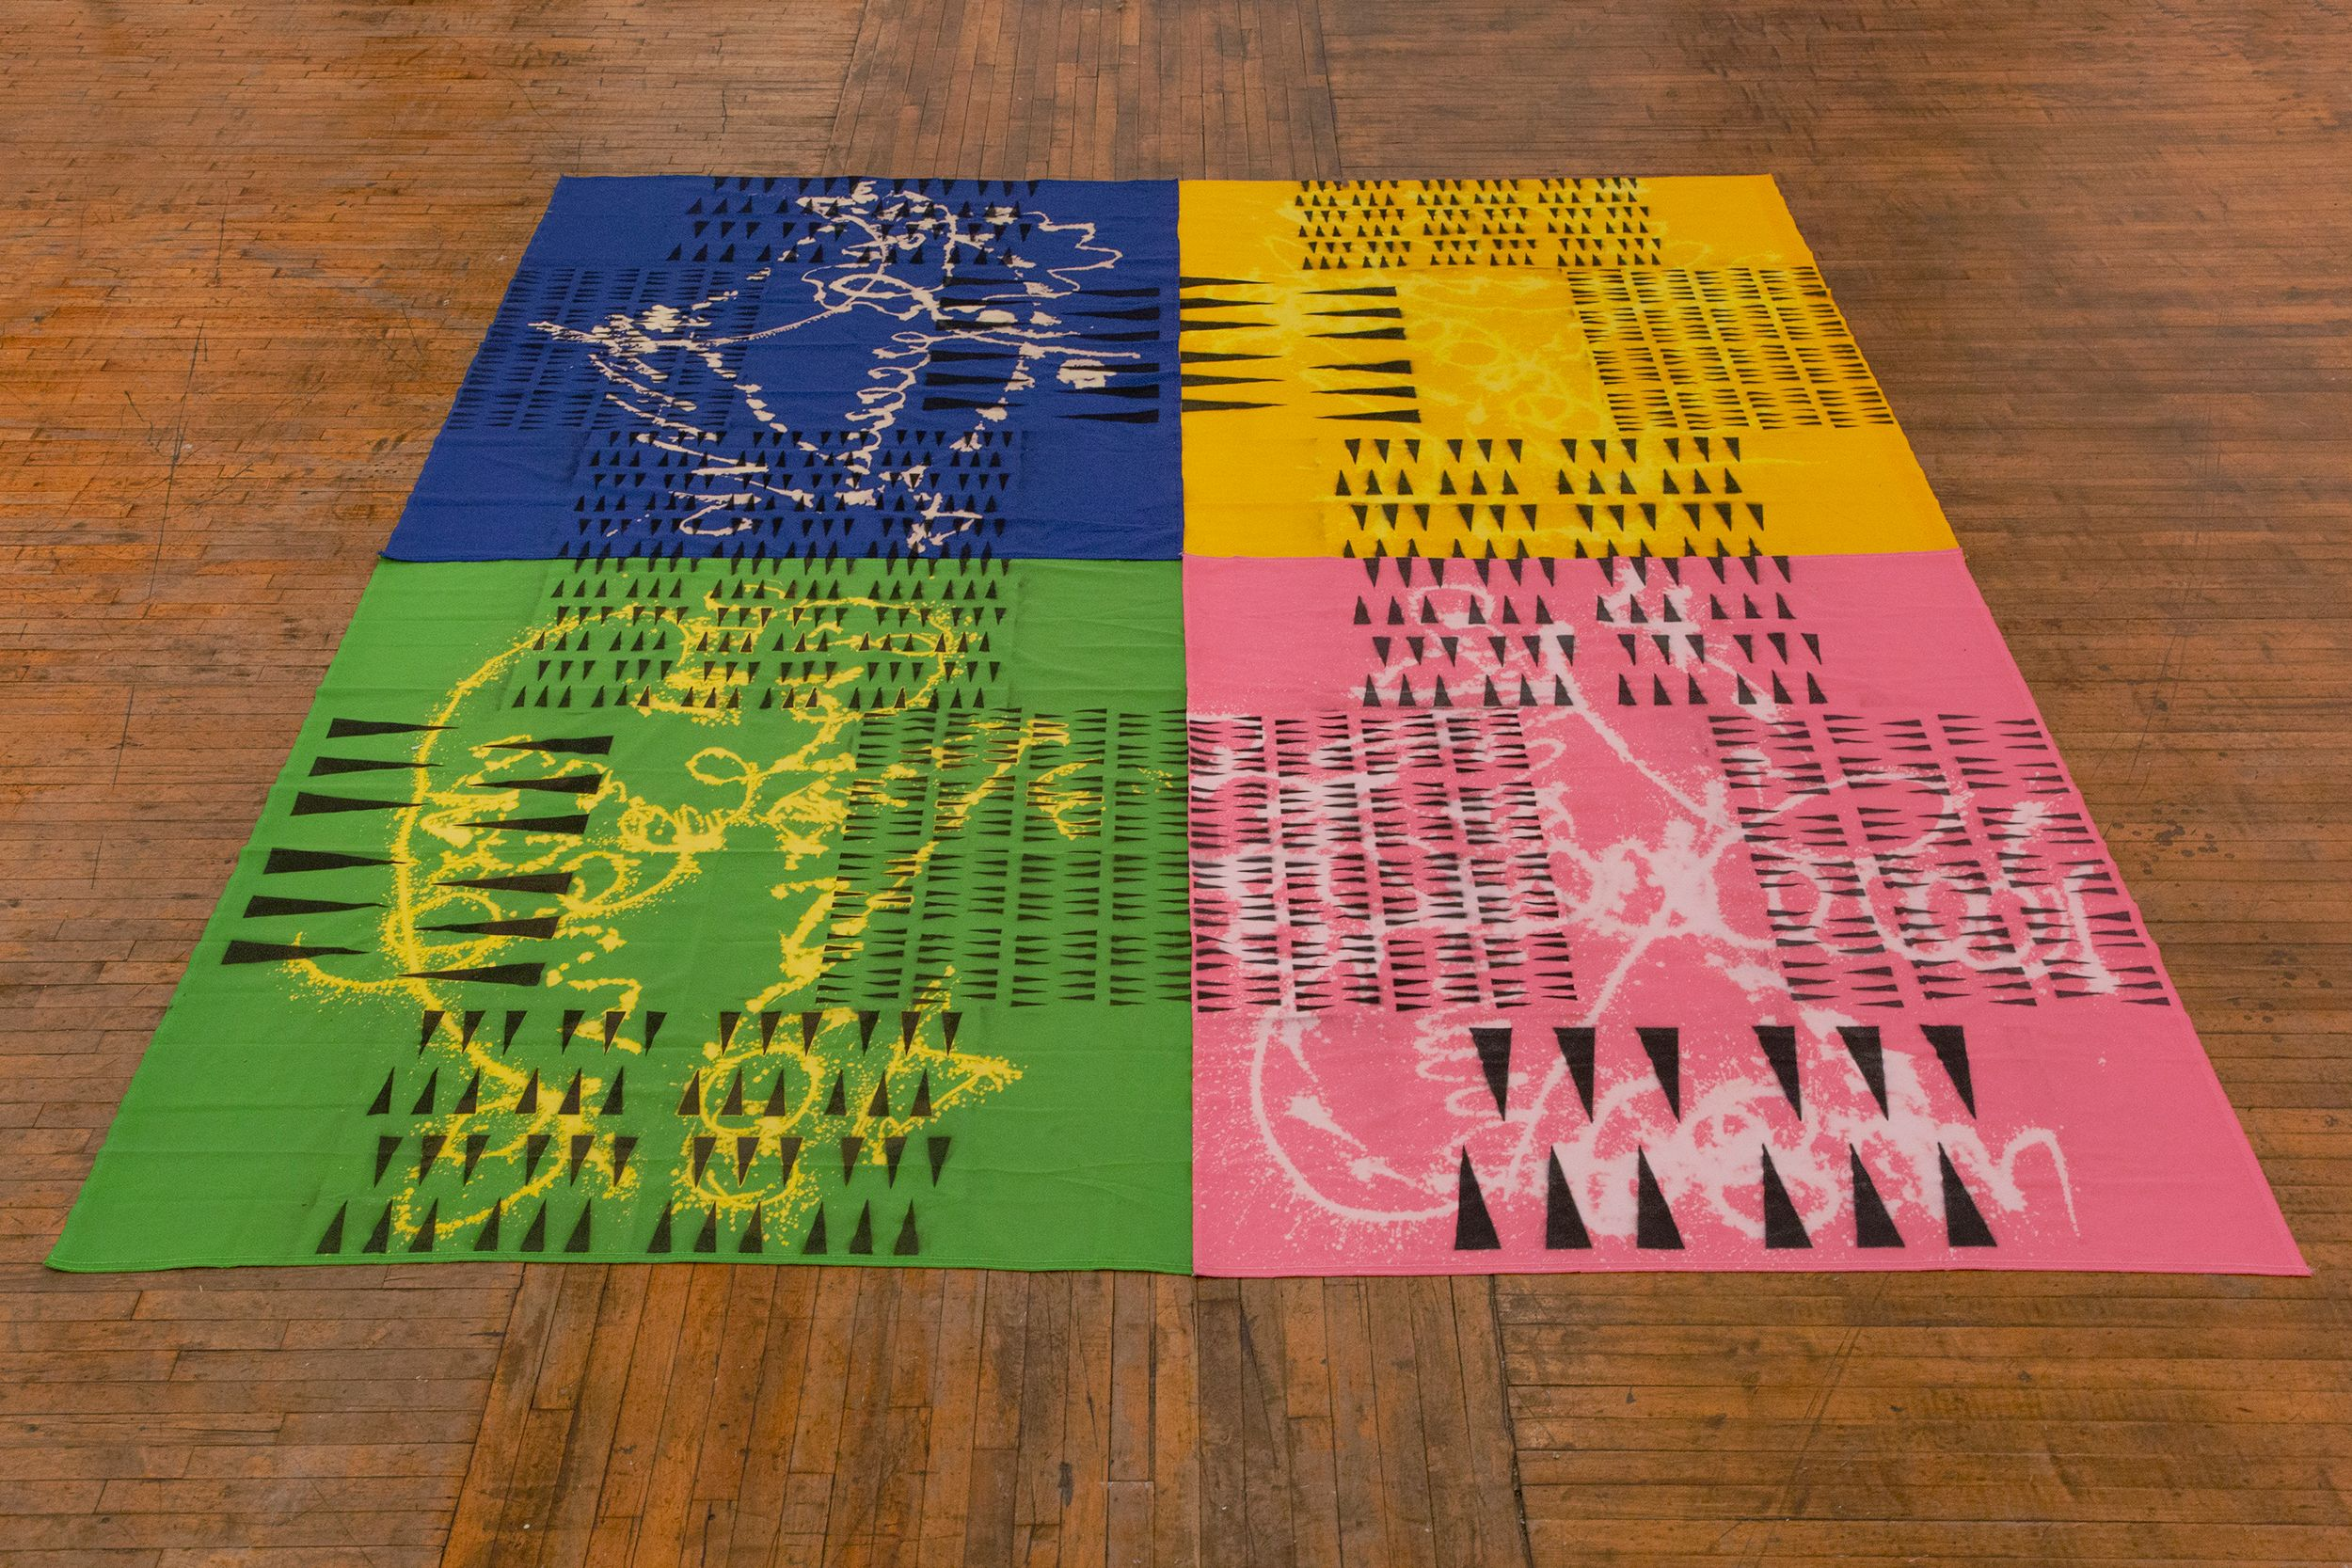 Polly Apfelbaum, Madeline Hollander, Zak Kitnick, DROP CITY, 2020 (installation view), from Downtown 2021 at La MaMa Galleria